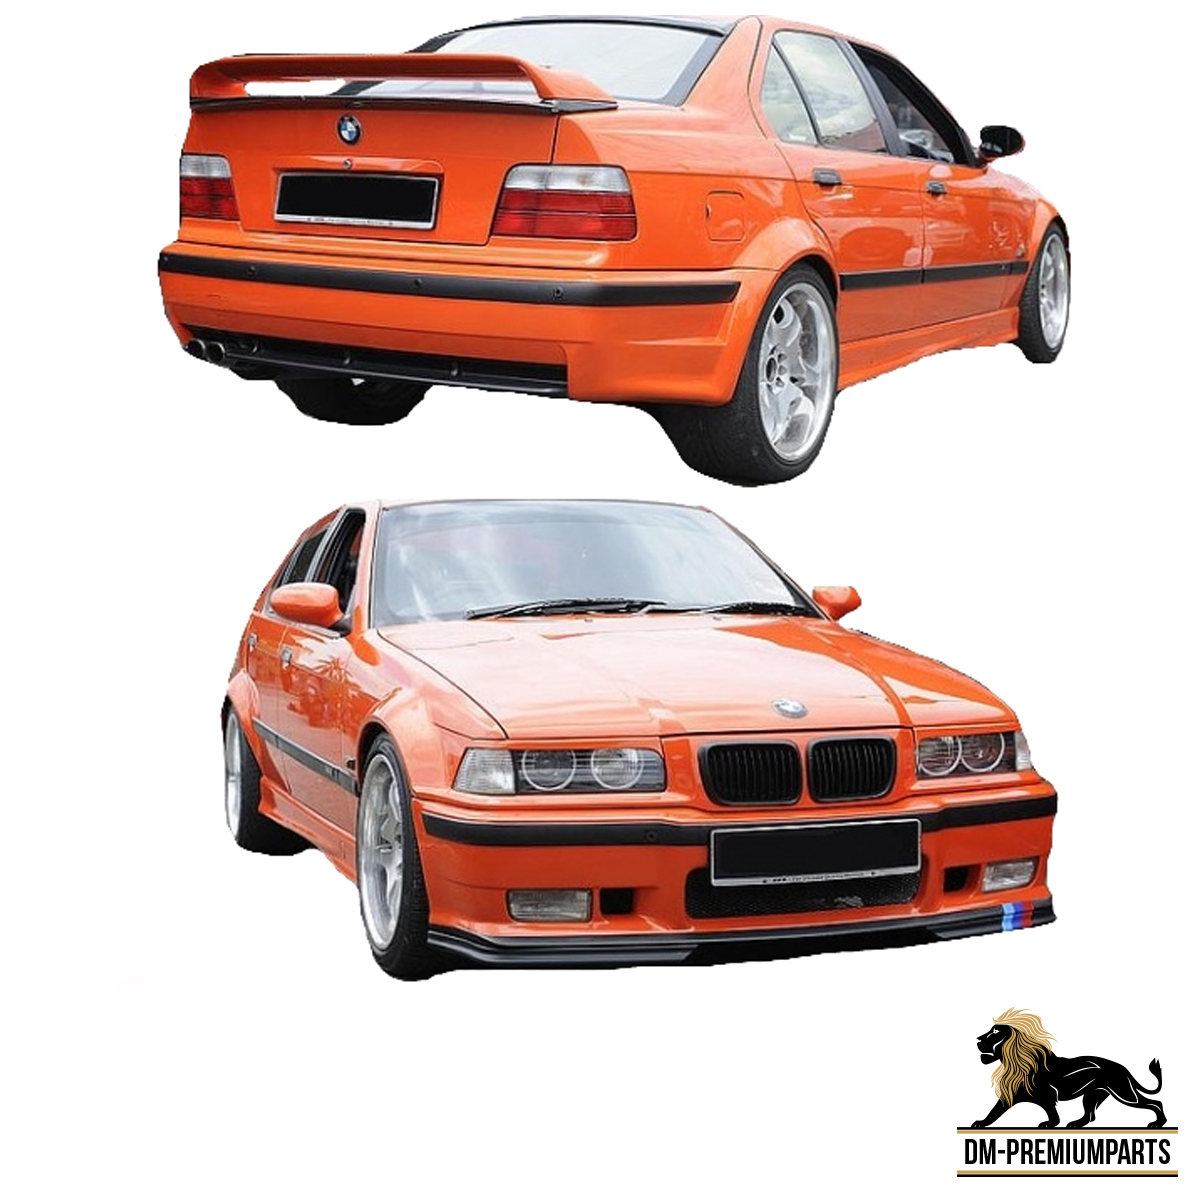 bmw e36 sto stange bodykit abs kompl paket zubeh r f r. Black Bedroom Furniture Sets. Home Design Ideas